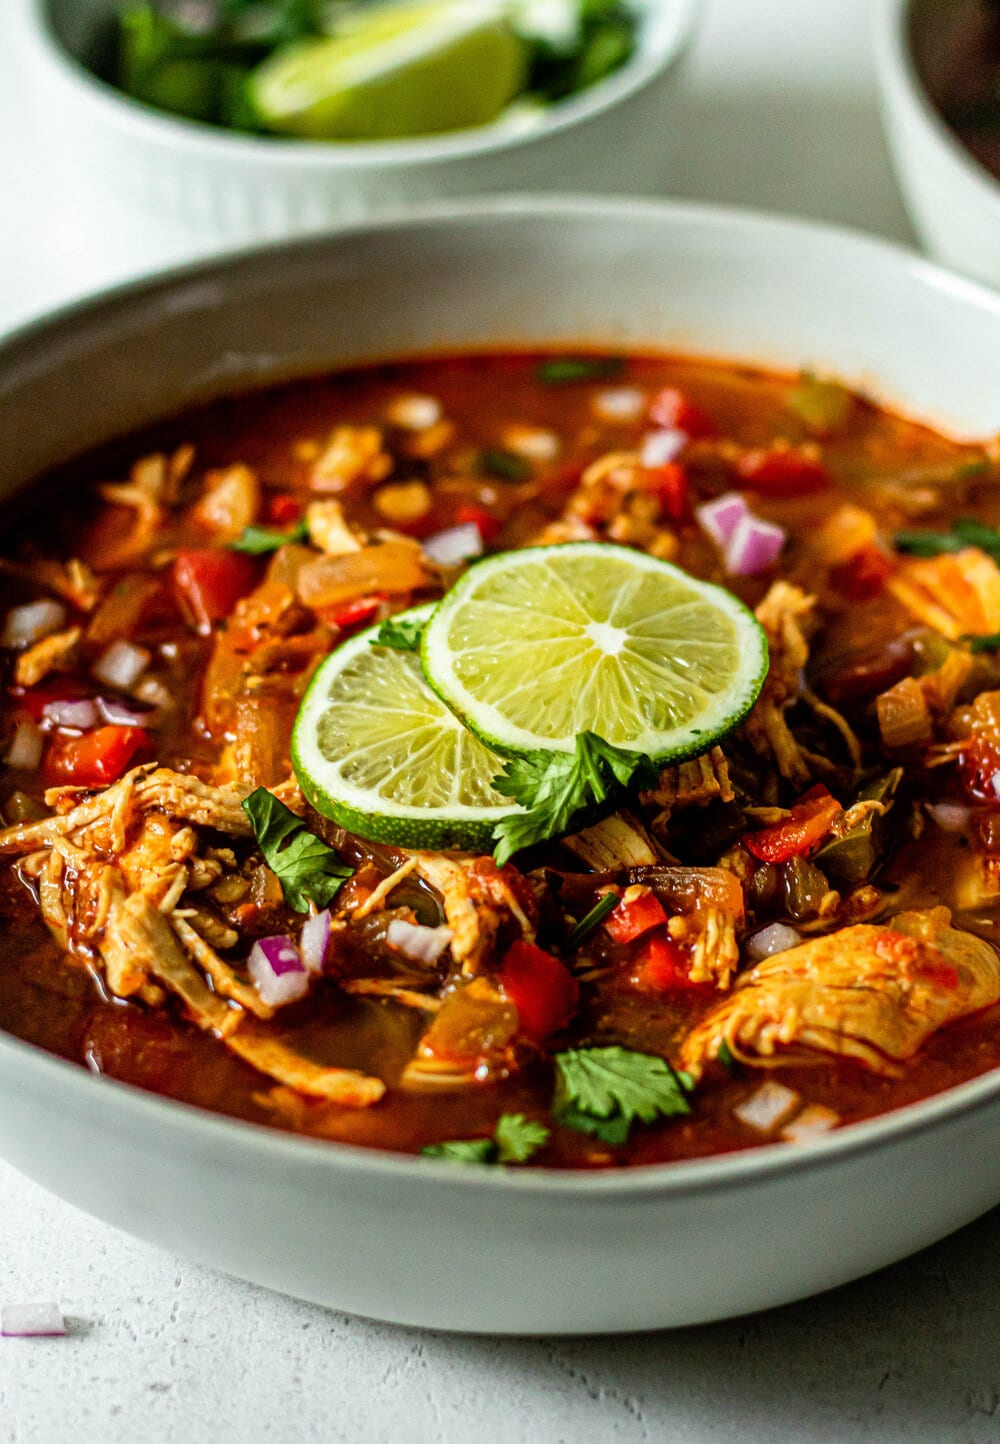 Healthy Chicken Taco Soup (Whole30, Paleo, Gluten-Free)